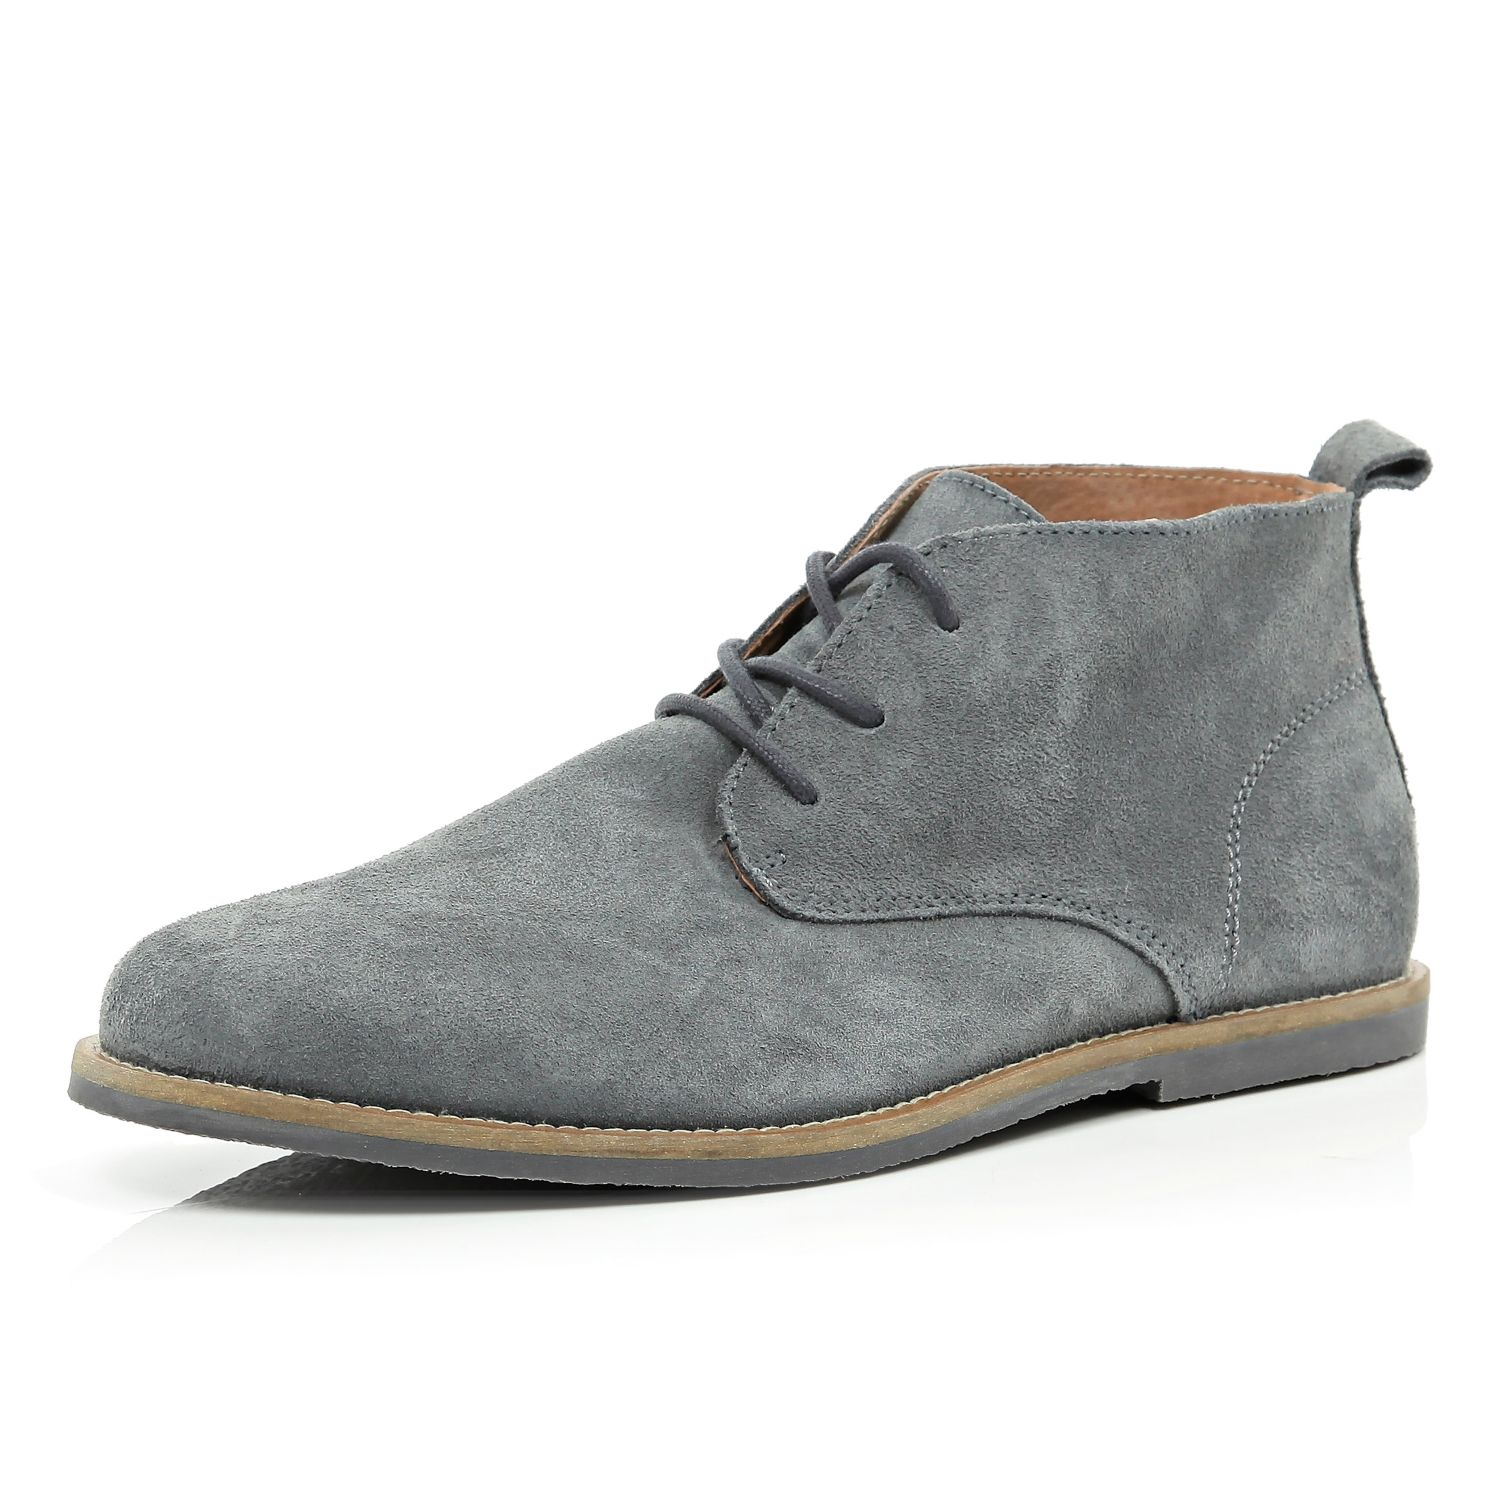 Mens Grey Boots dOyrCHVJ